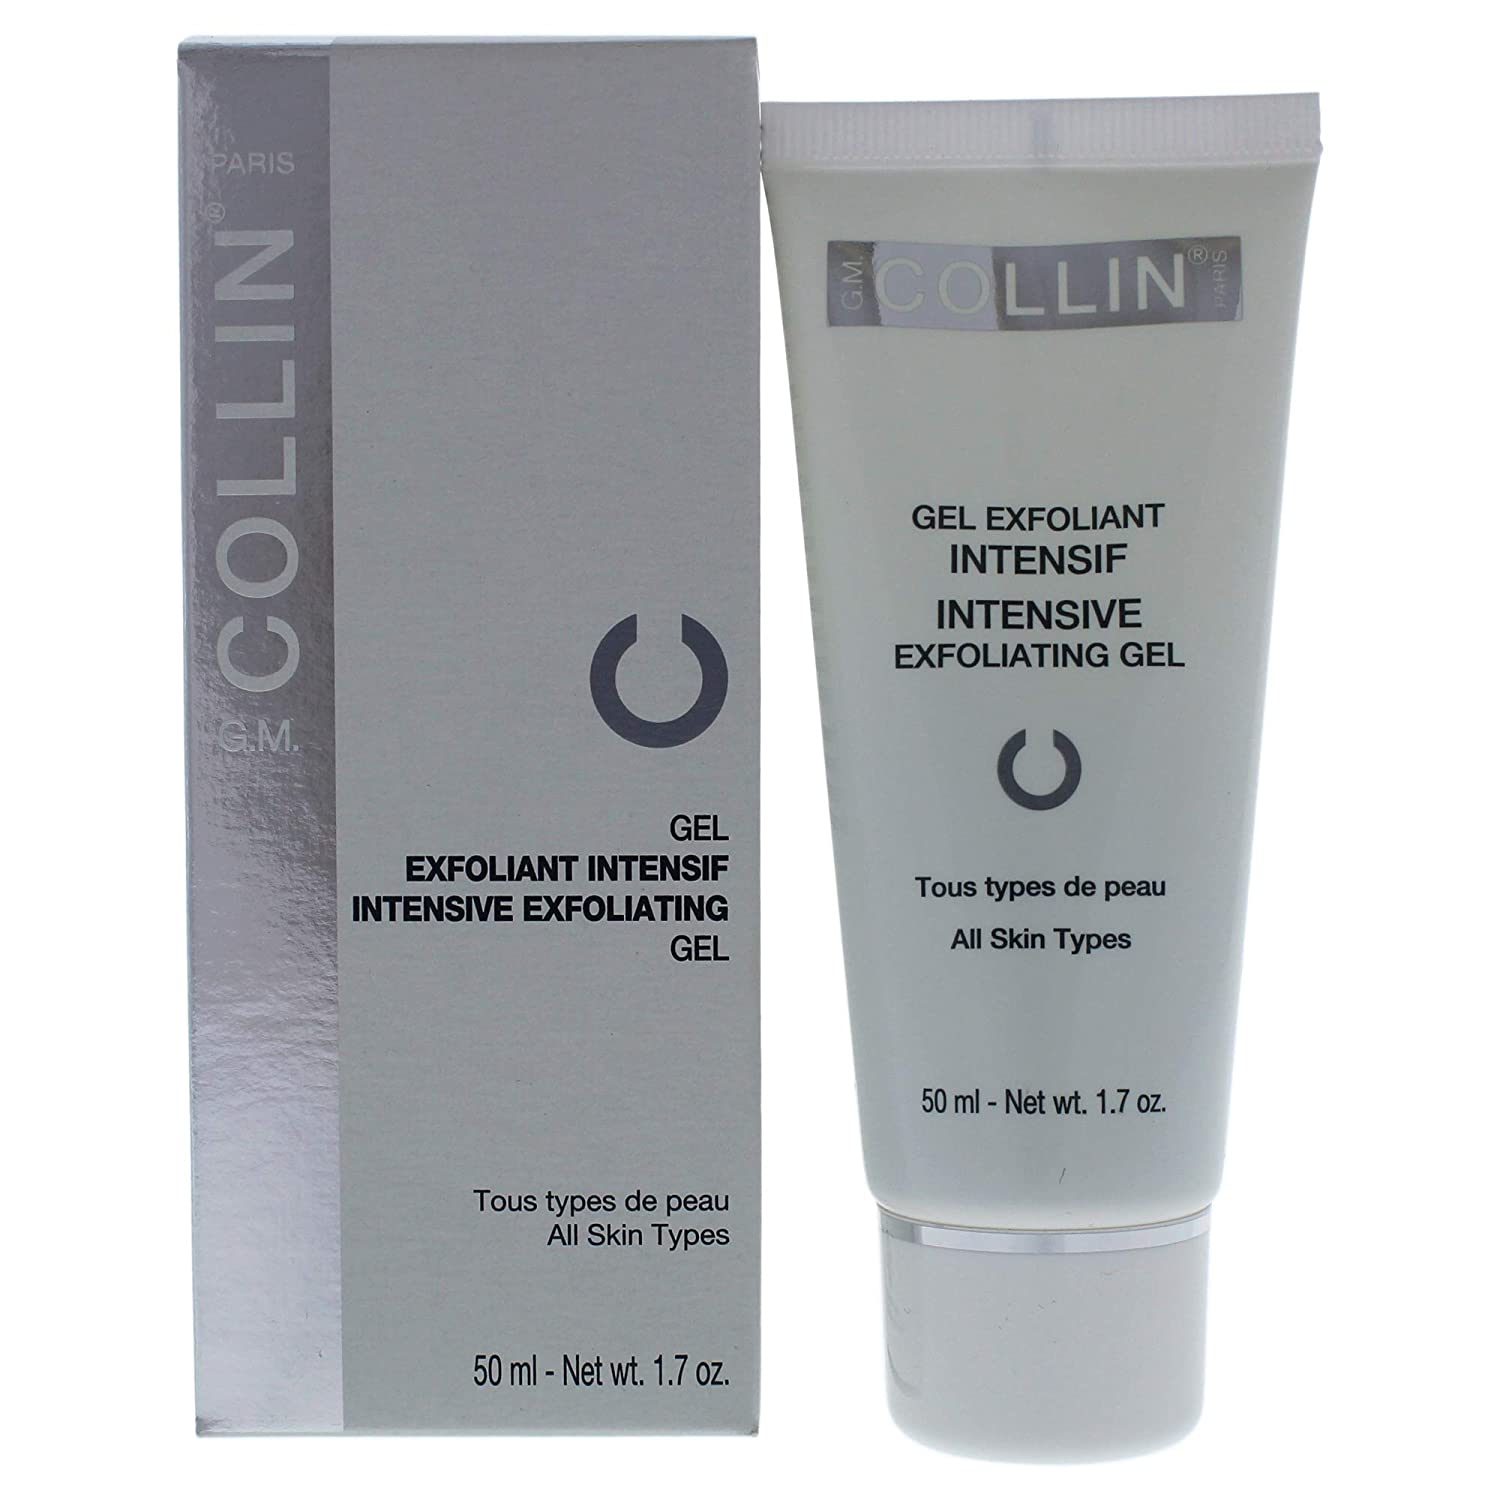 G.M. Collin Facial Cleansing Intensive Exfoliating Gel, 1.7 Fluid Ounce: Beauty